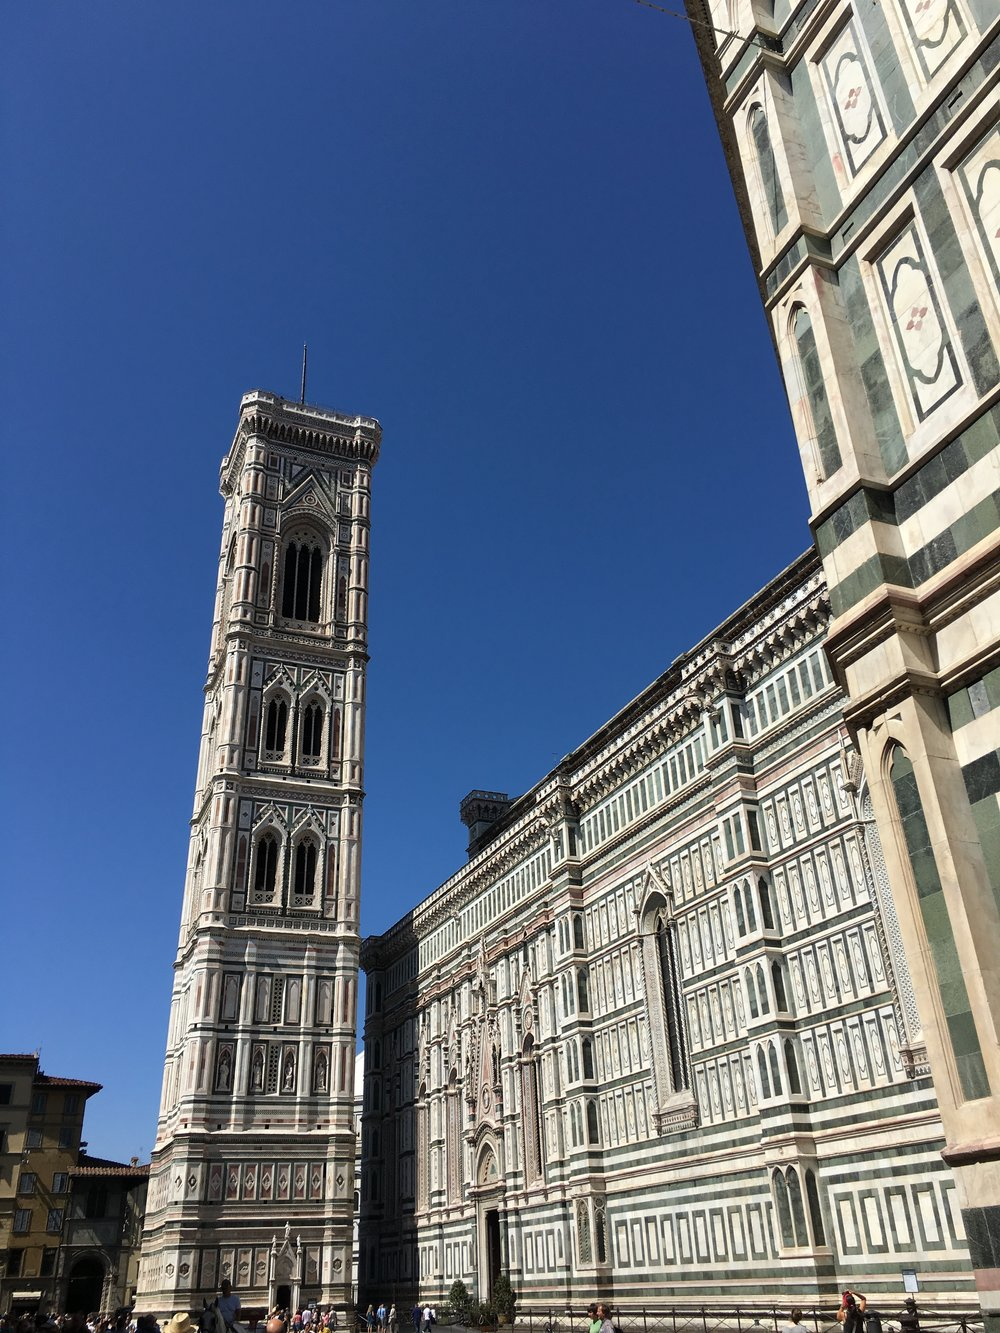 Giotto's Bell Tower in Florence, Italy - iPhone 6s Plus, hand-held ISO 25, f/2.2, ISO 2747